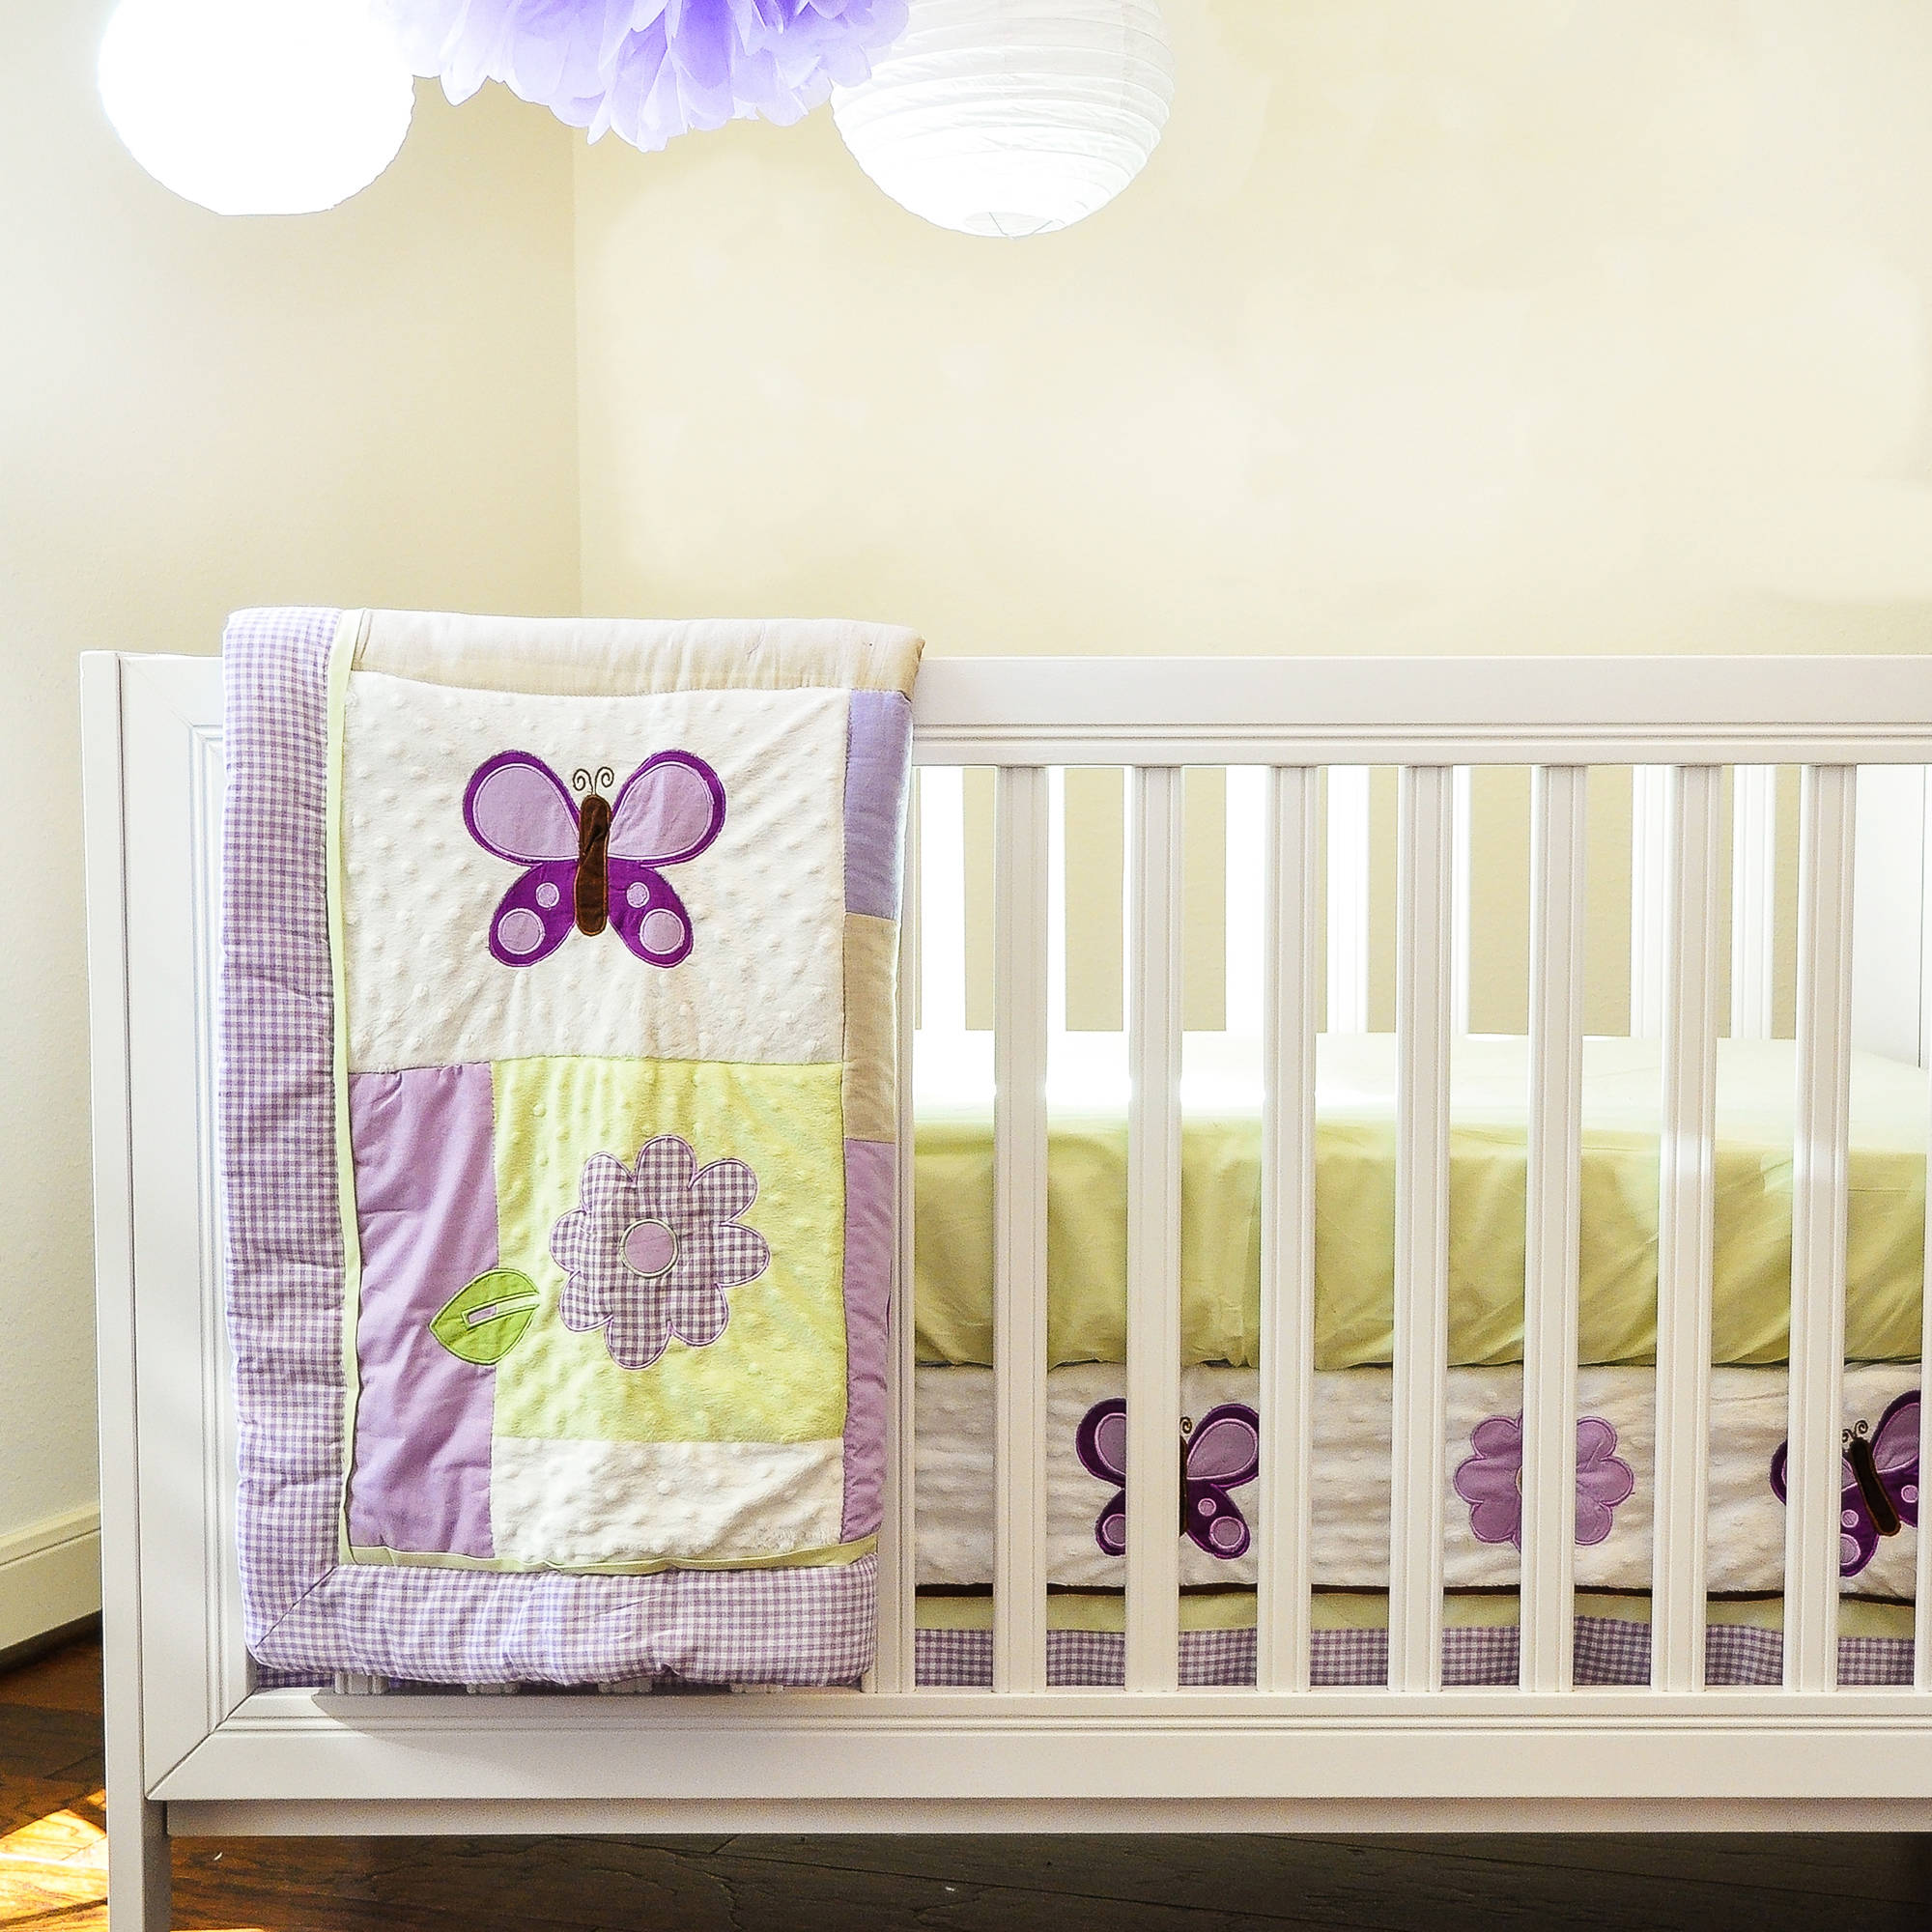 Lavender Butterfly Nursery in a Bag Bedding Set